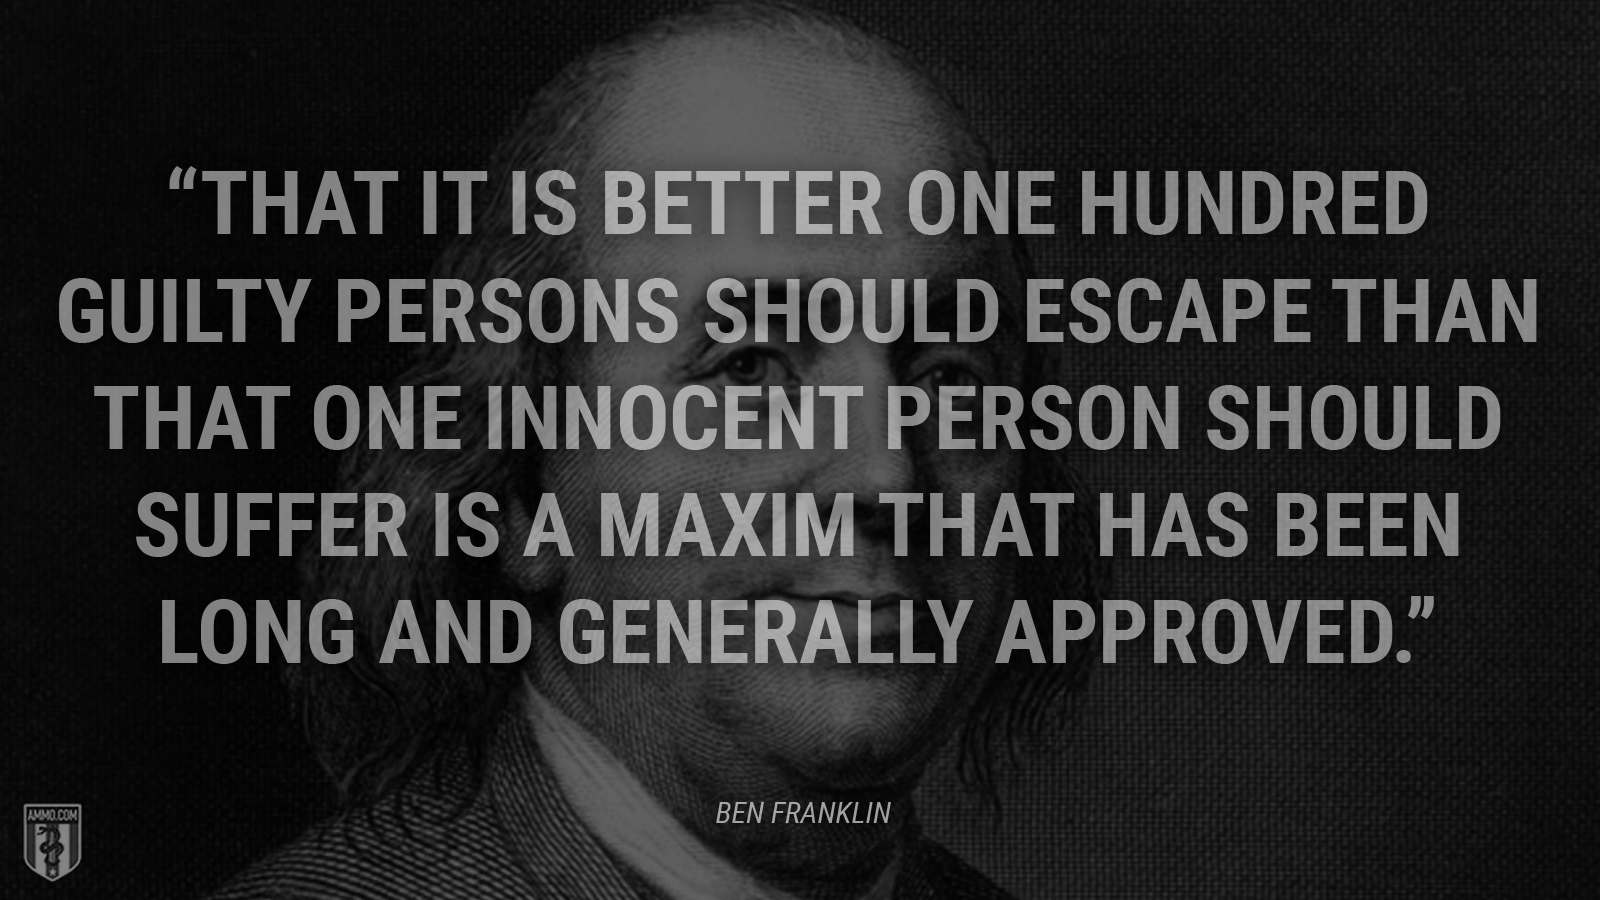 """That it is better one hundred guilty persons should escape than that one innocent person should suffer is a maxim that has been long and generally approved."" - Benjamin Franklin"